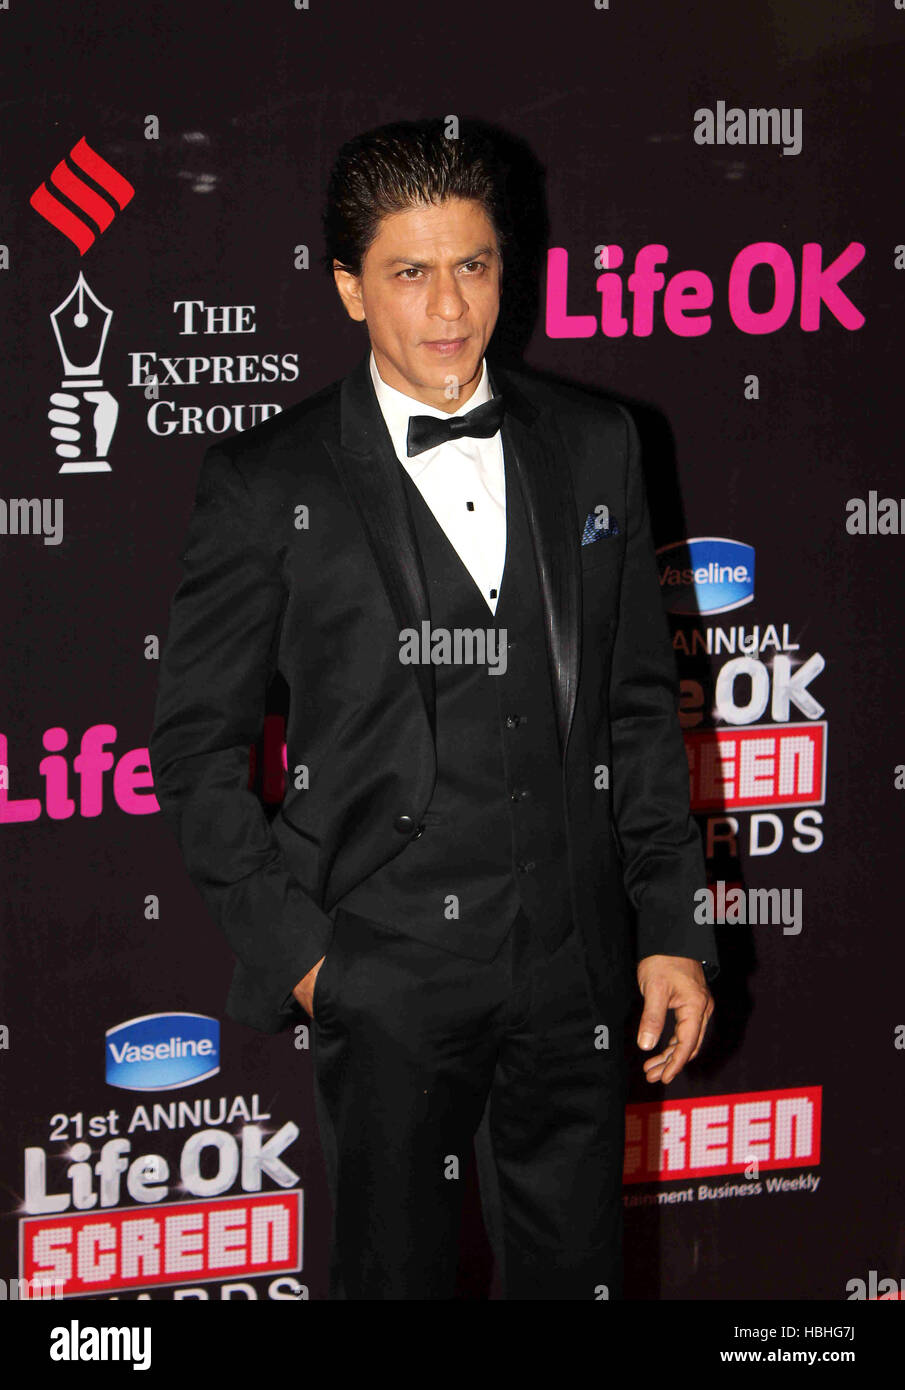 Bollywood actor Shahrukh Khan during the 21st Annual Life OK Screen Awards in Mumbai, India on January 14, 2015. Stock Photo